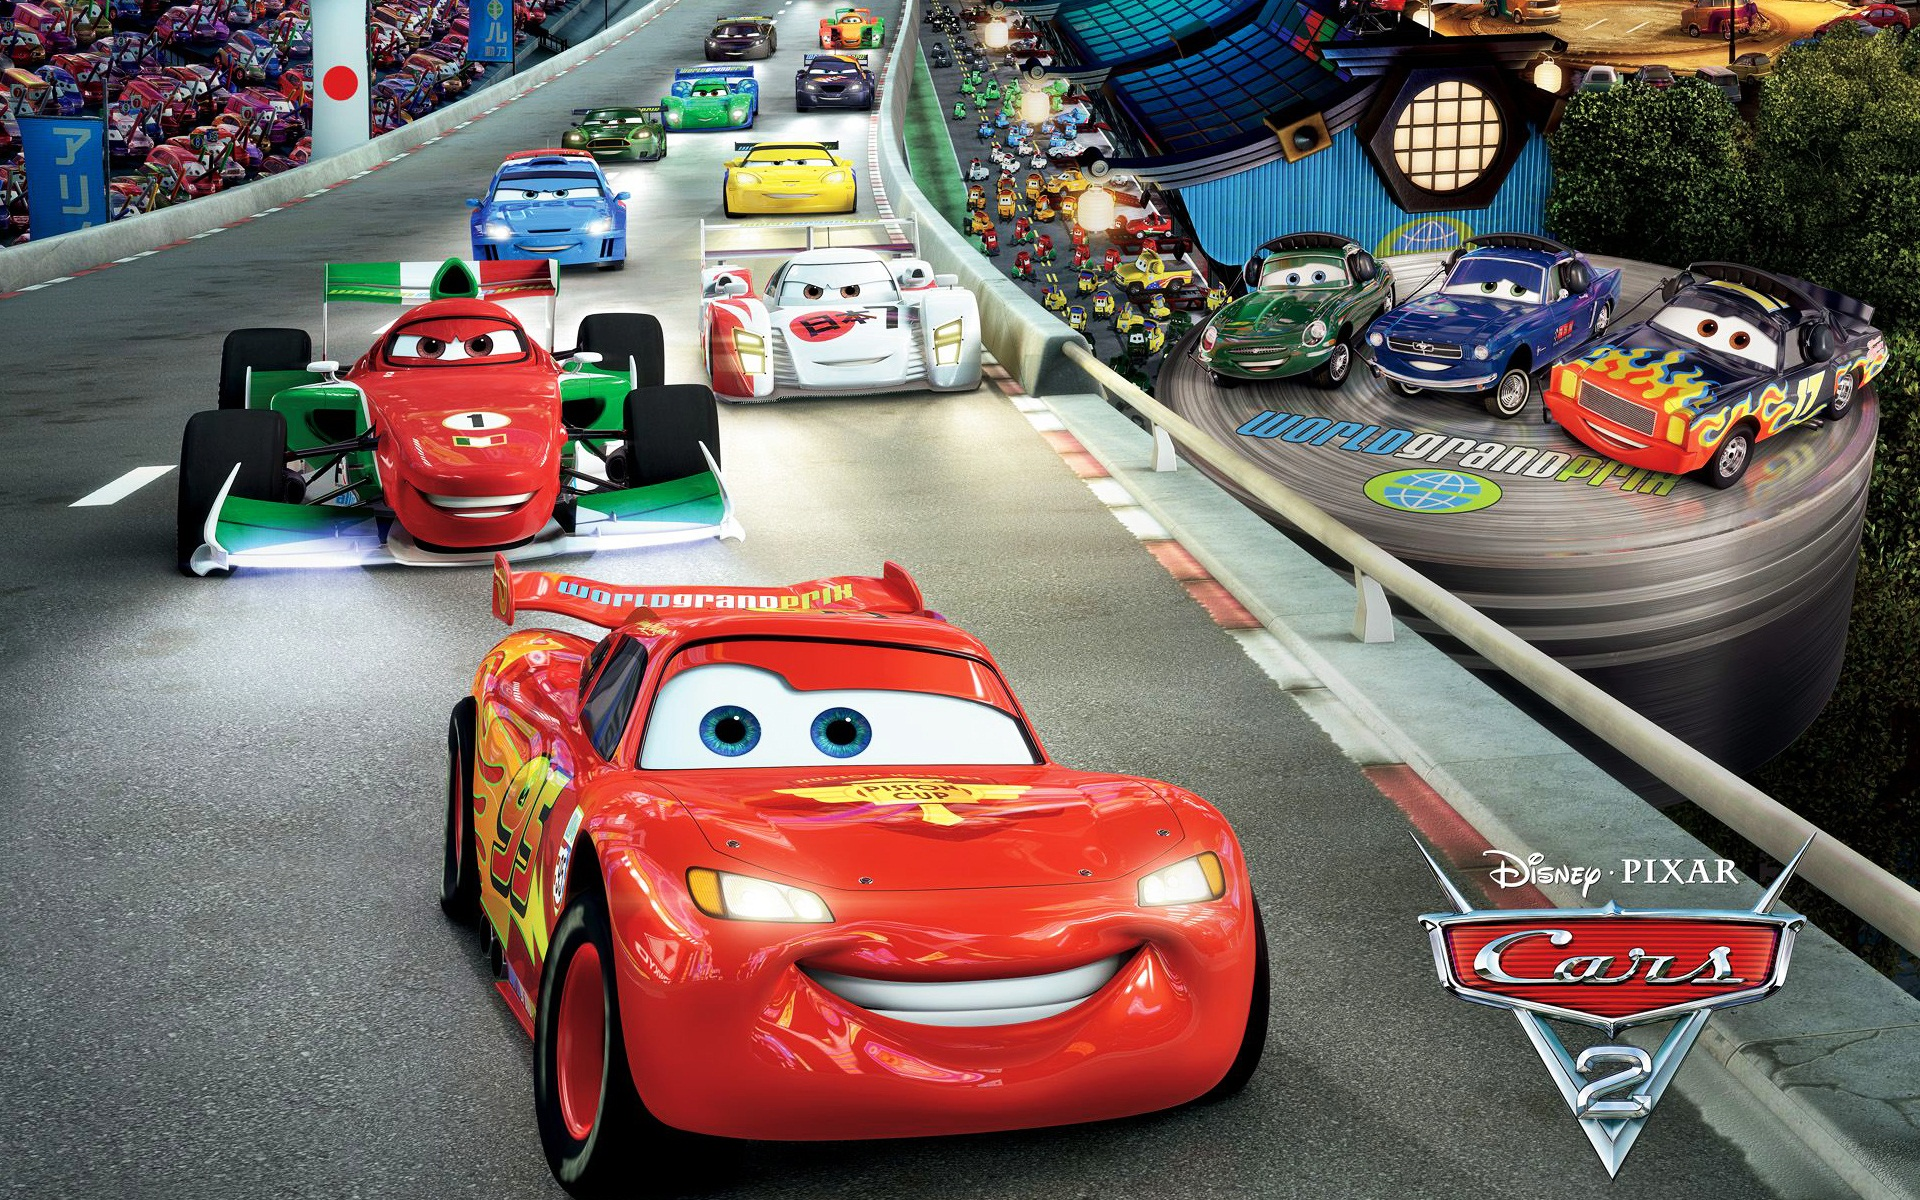 Disney pixar cars 2 cars 2